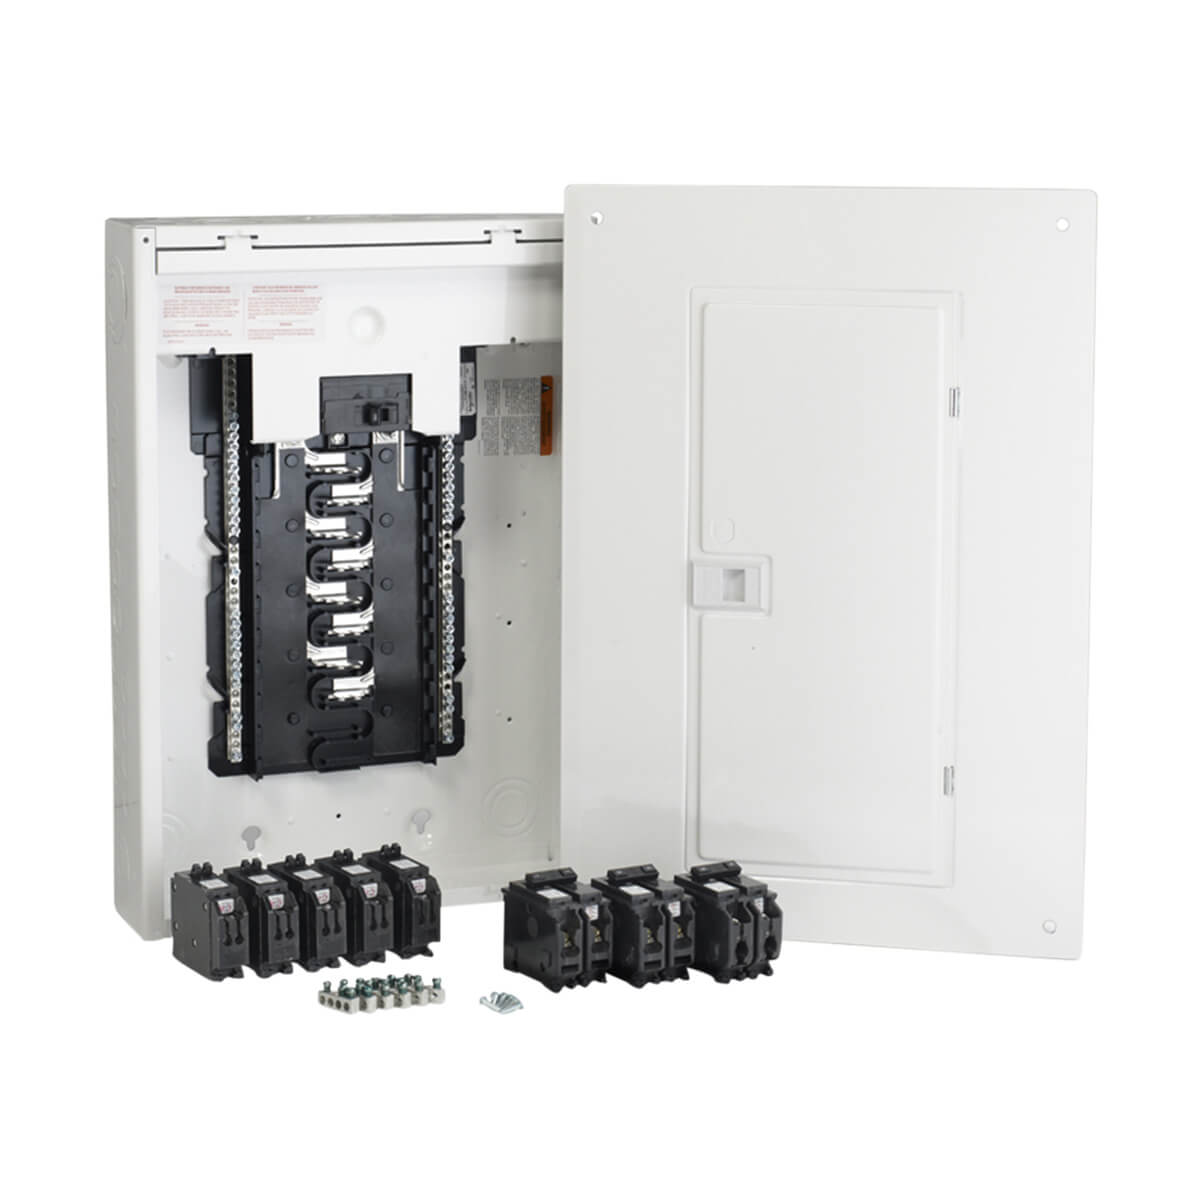 Circuits Maximum HomeLine Retrofit Panel Package with Breakers - 100 Amp, 16 Spaces/32